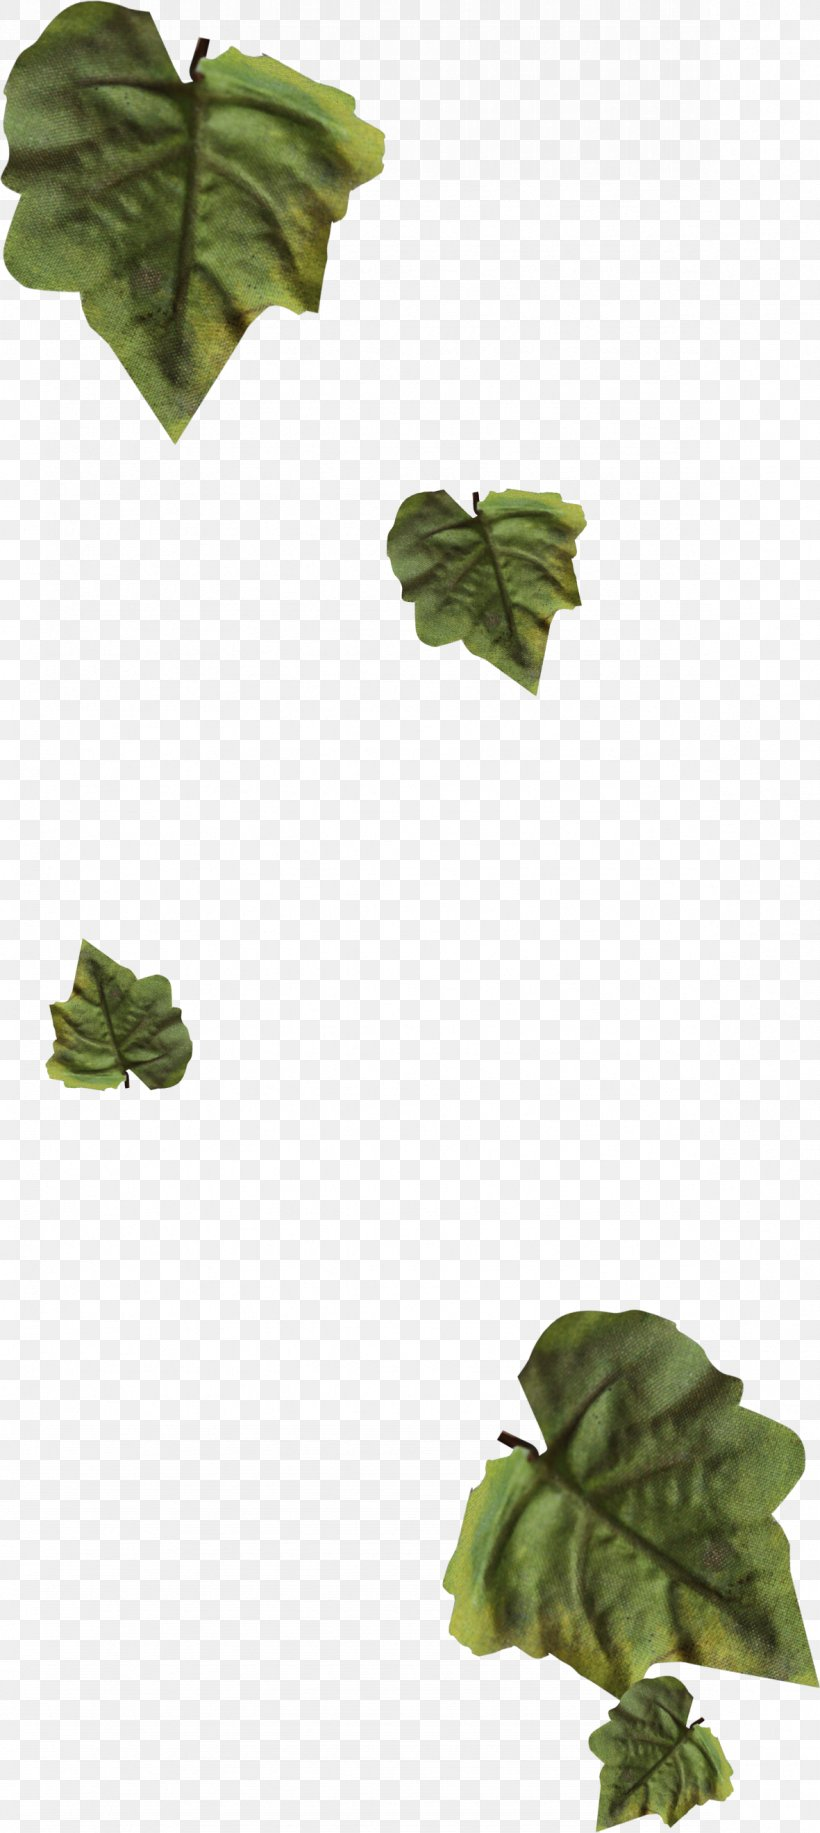 Leaf Garland Wreath Drawing Png 1181x2640px Leaf Advertising Autumn Brown Drawing Download Free